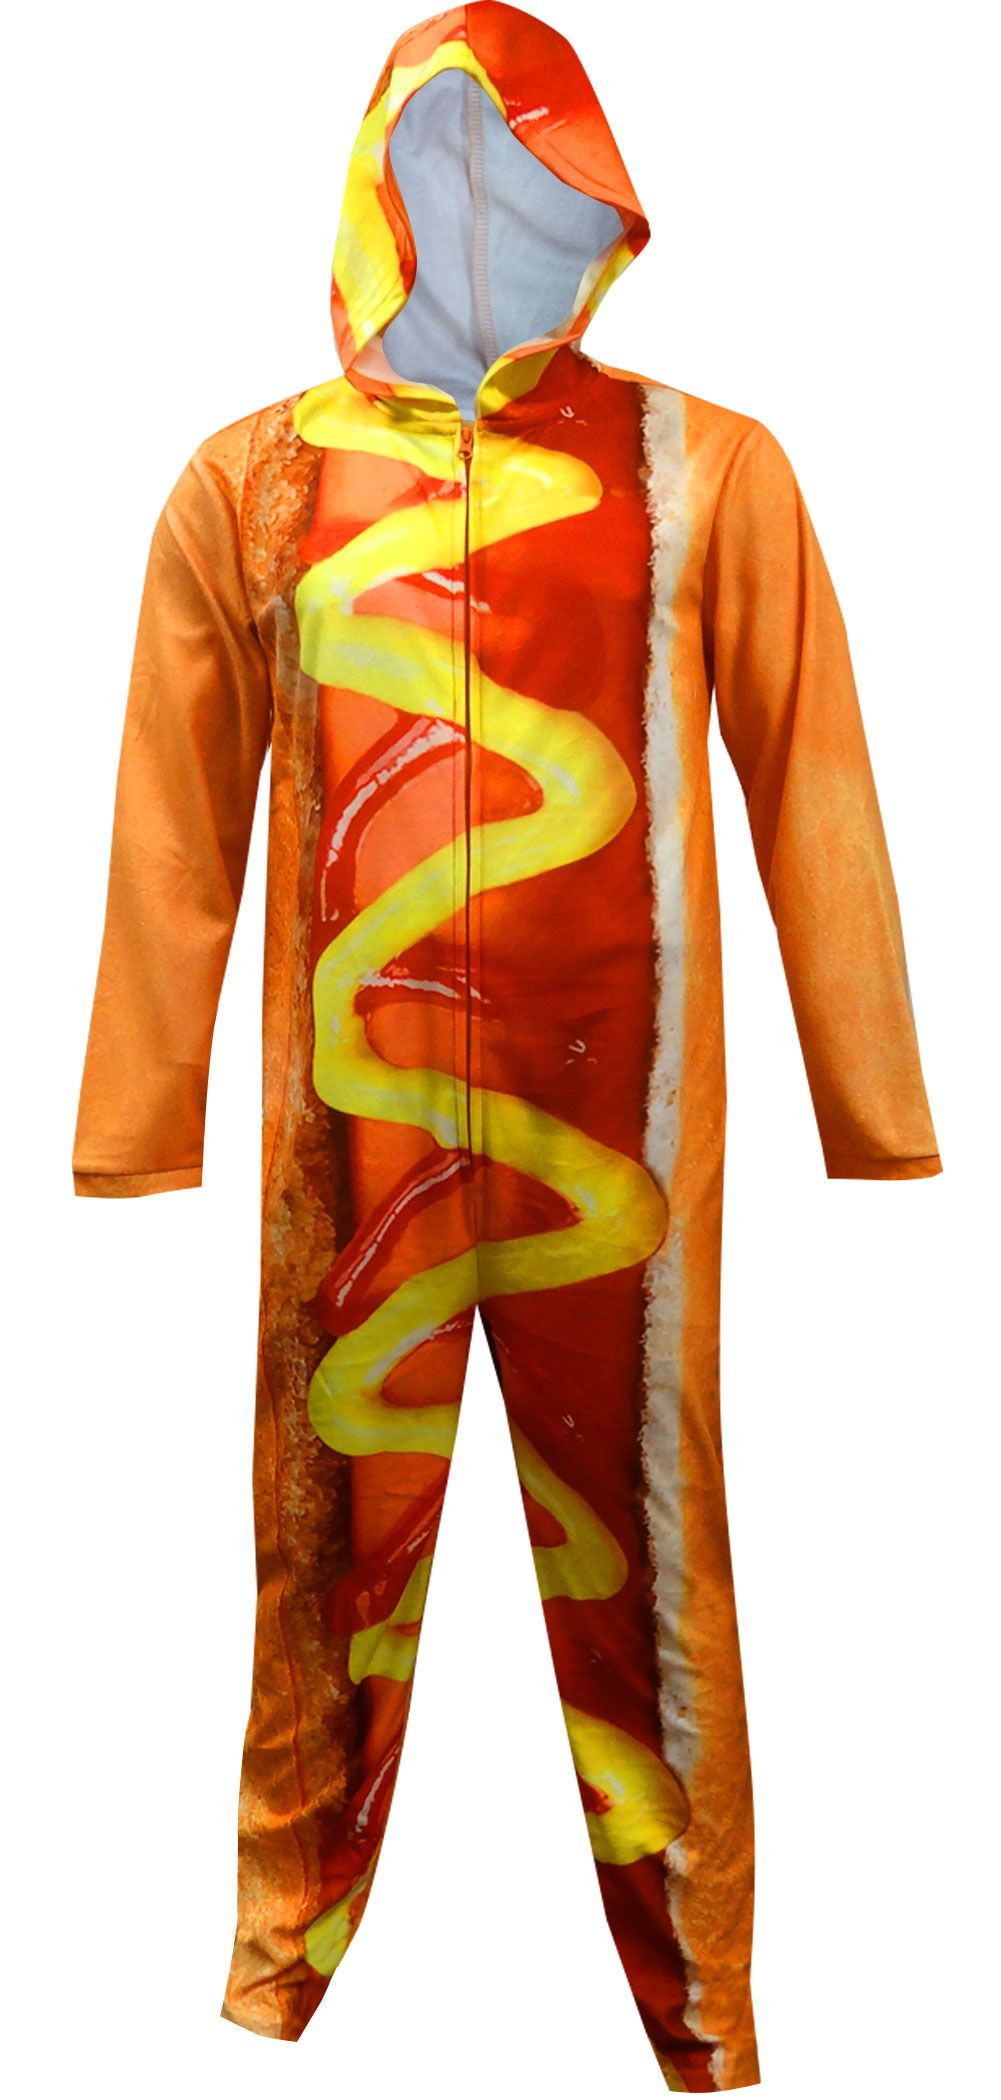 24440f5da WebUndies.com Unisex Hot Dog Hooded Onesie Pajama